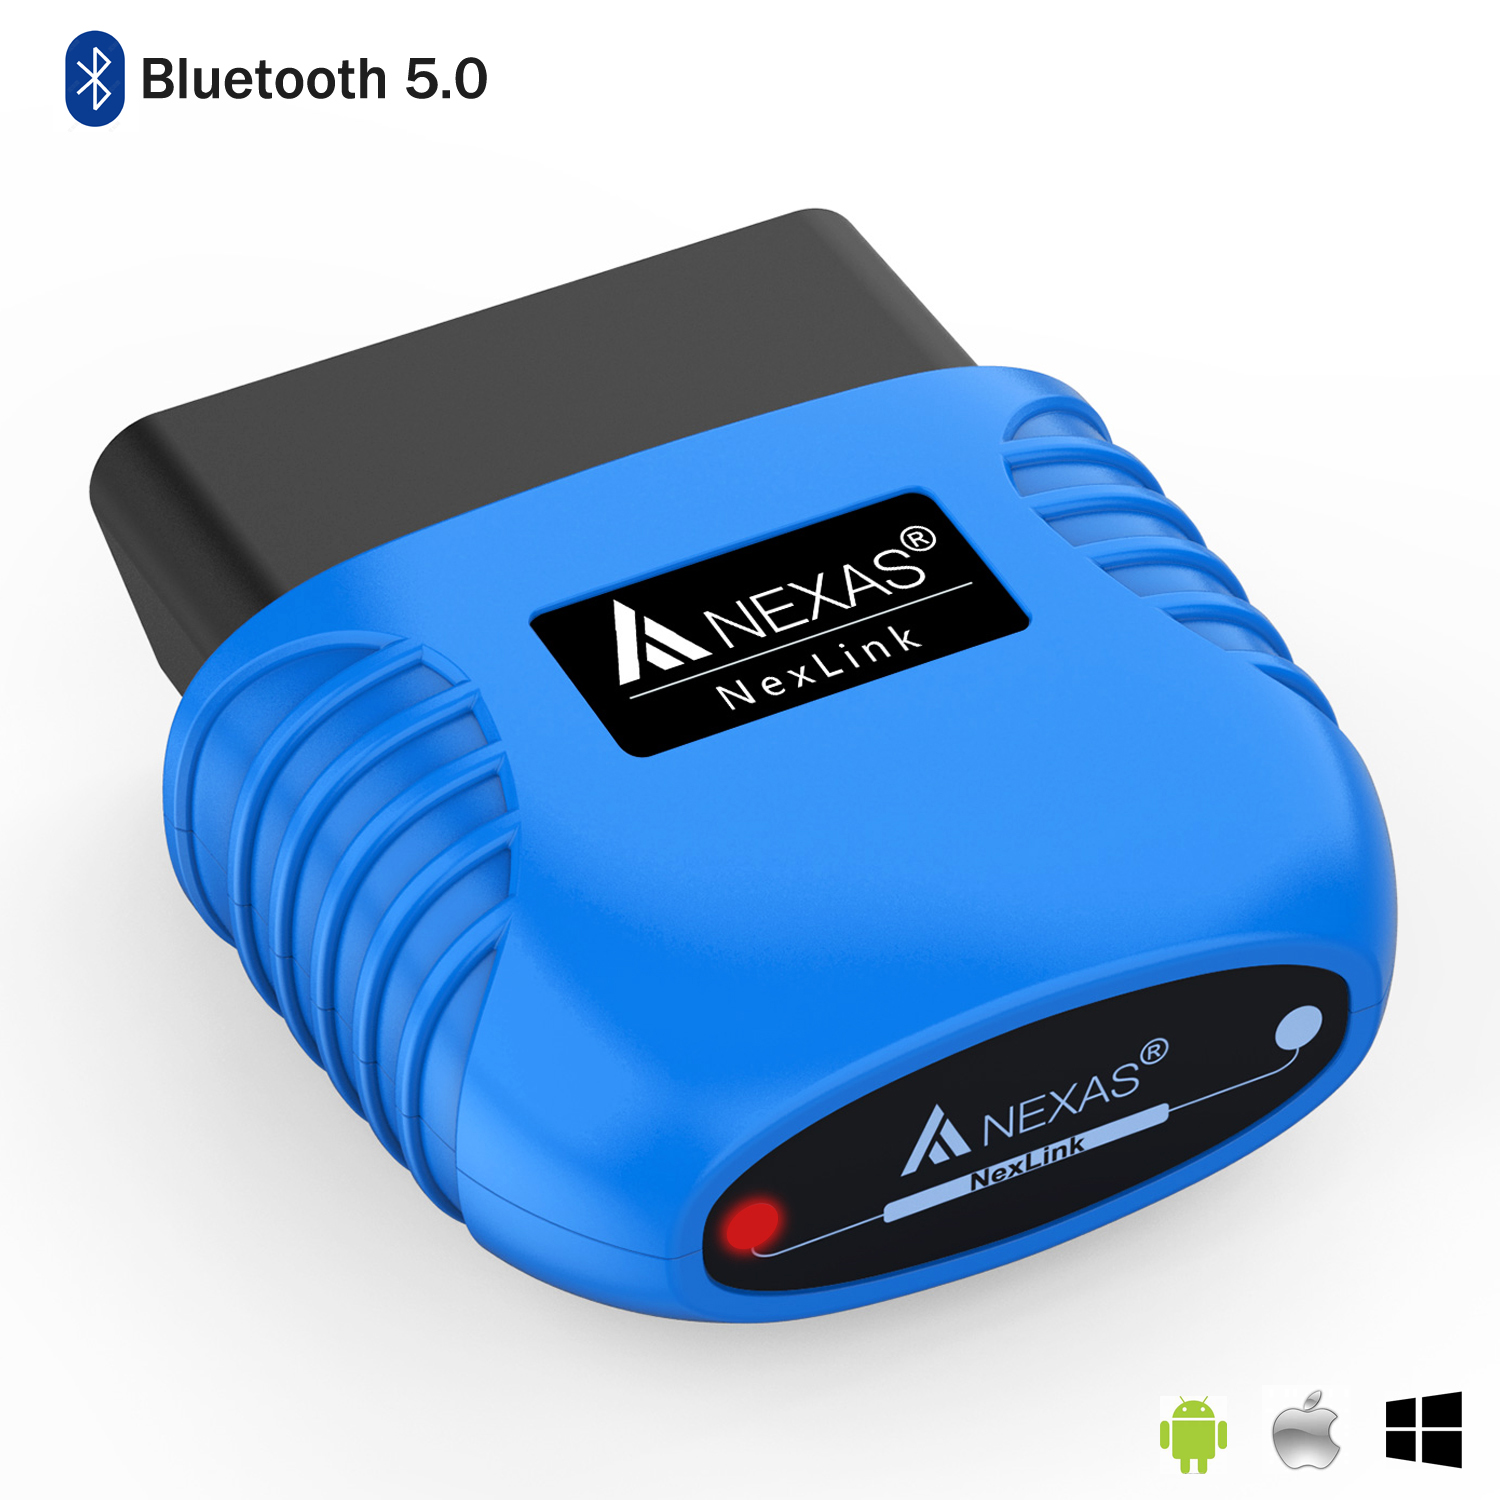 NexLink Bluetooth 5.0